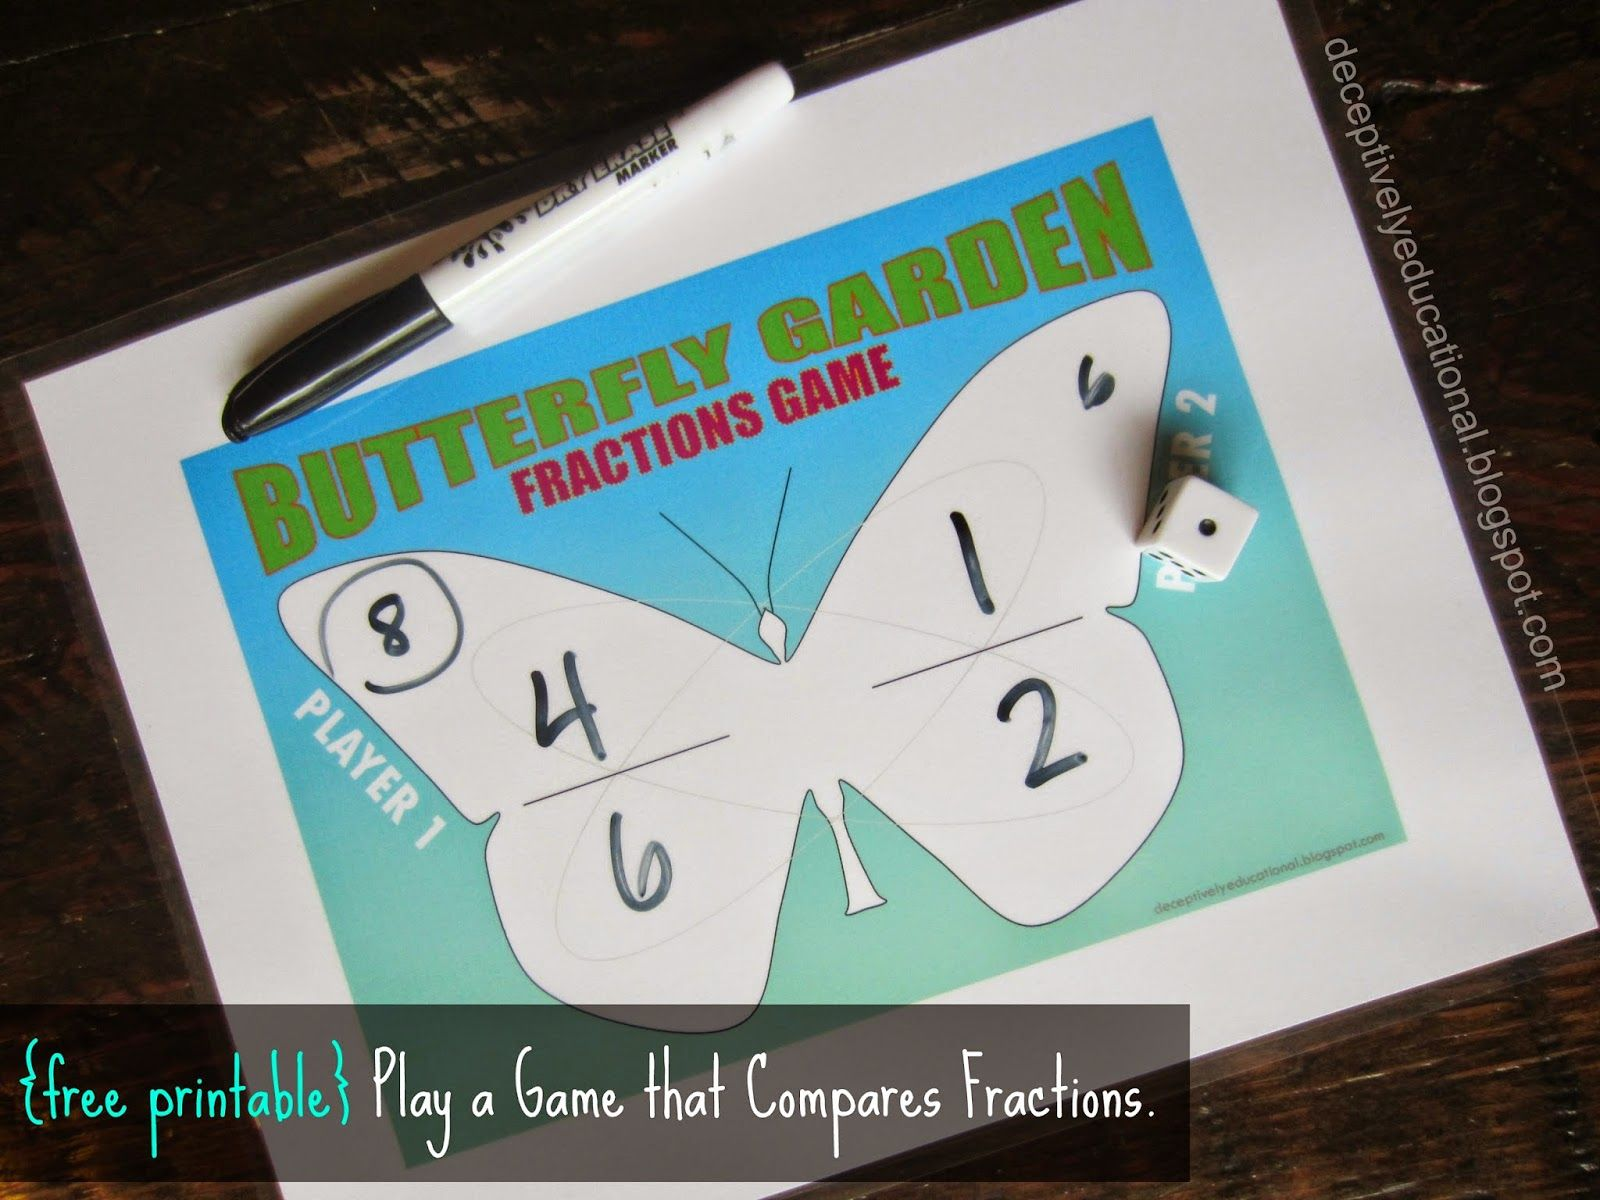 Fractions seem to be tough for kids to conquer. To help our 9-year ...